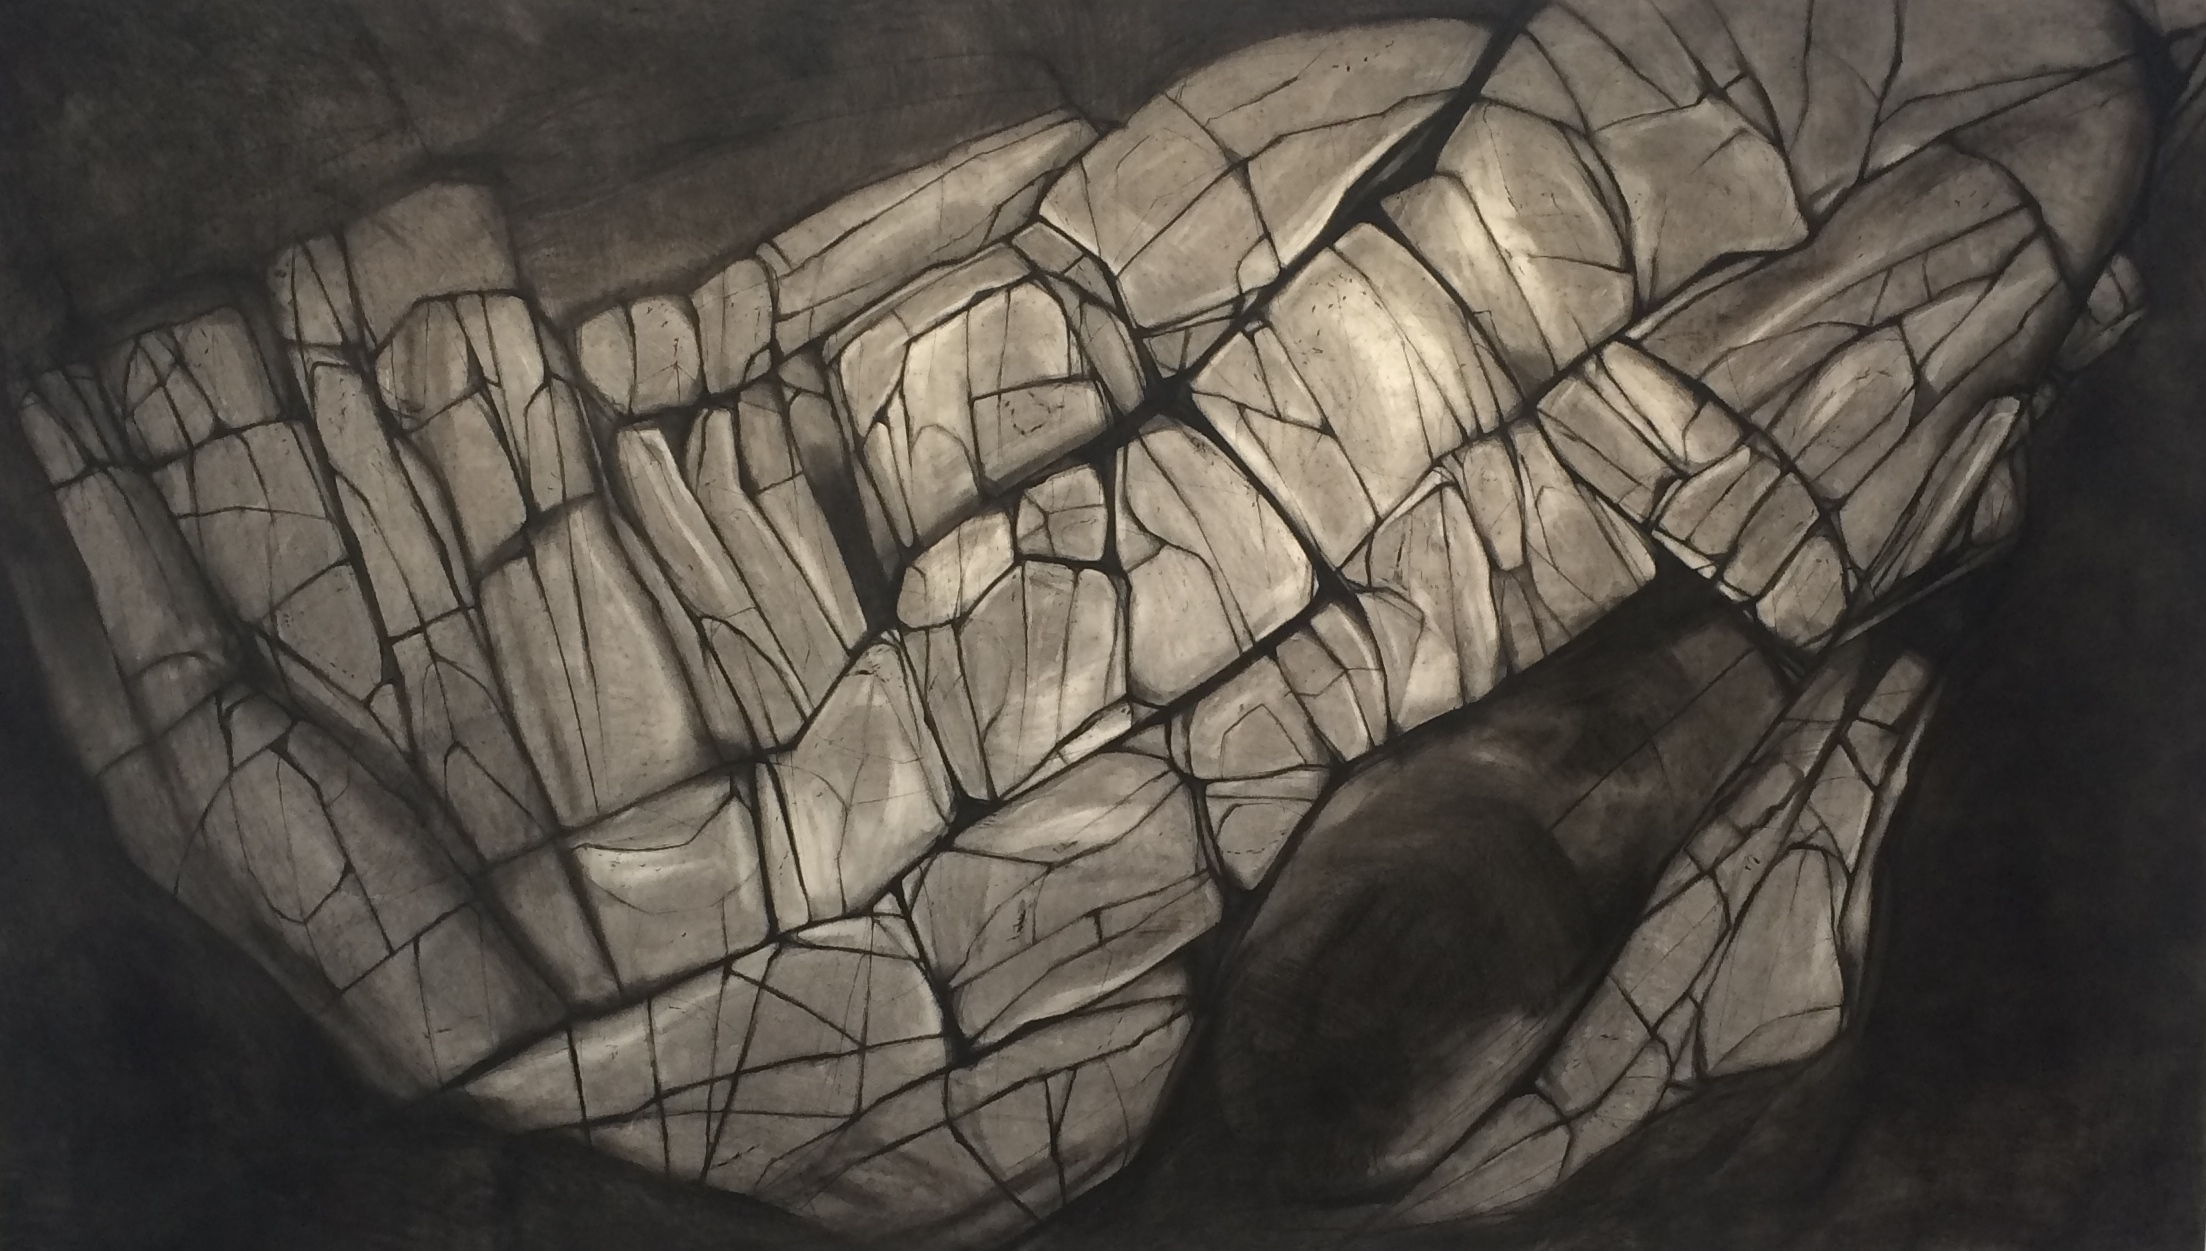 Ellis O'Connor -  Shifting Land  (Charcoal and conté on paper)